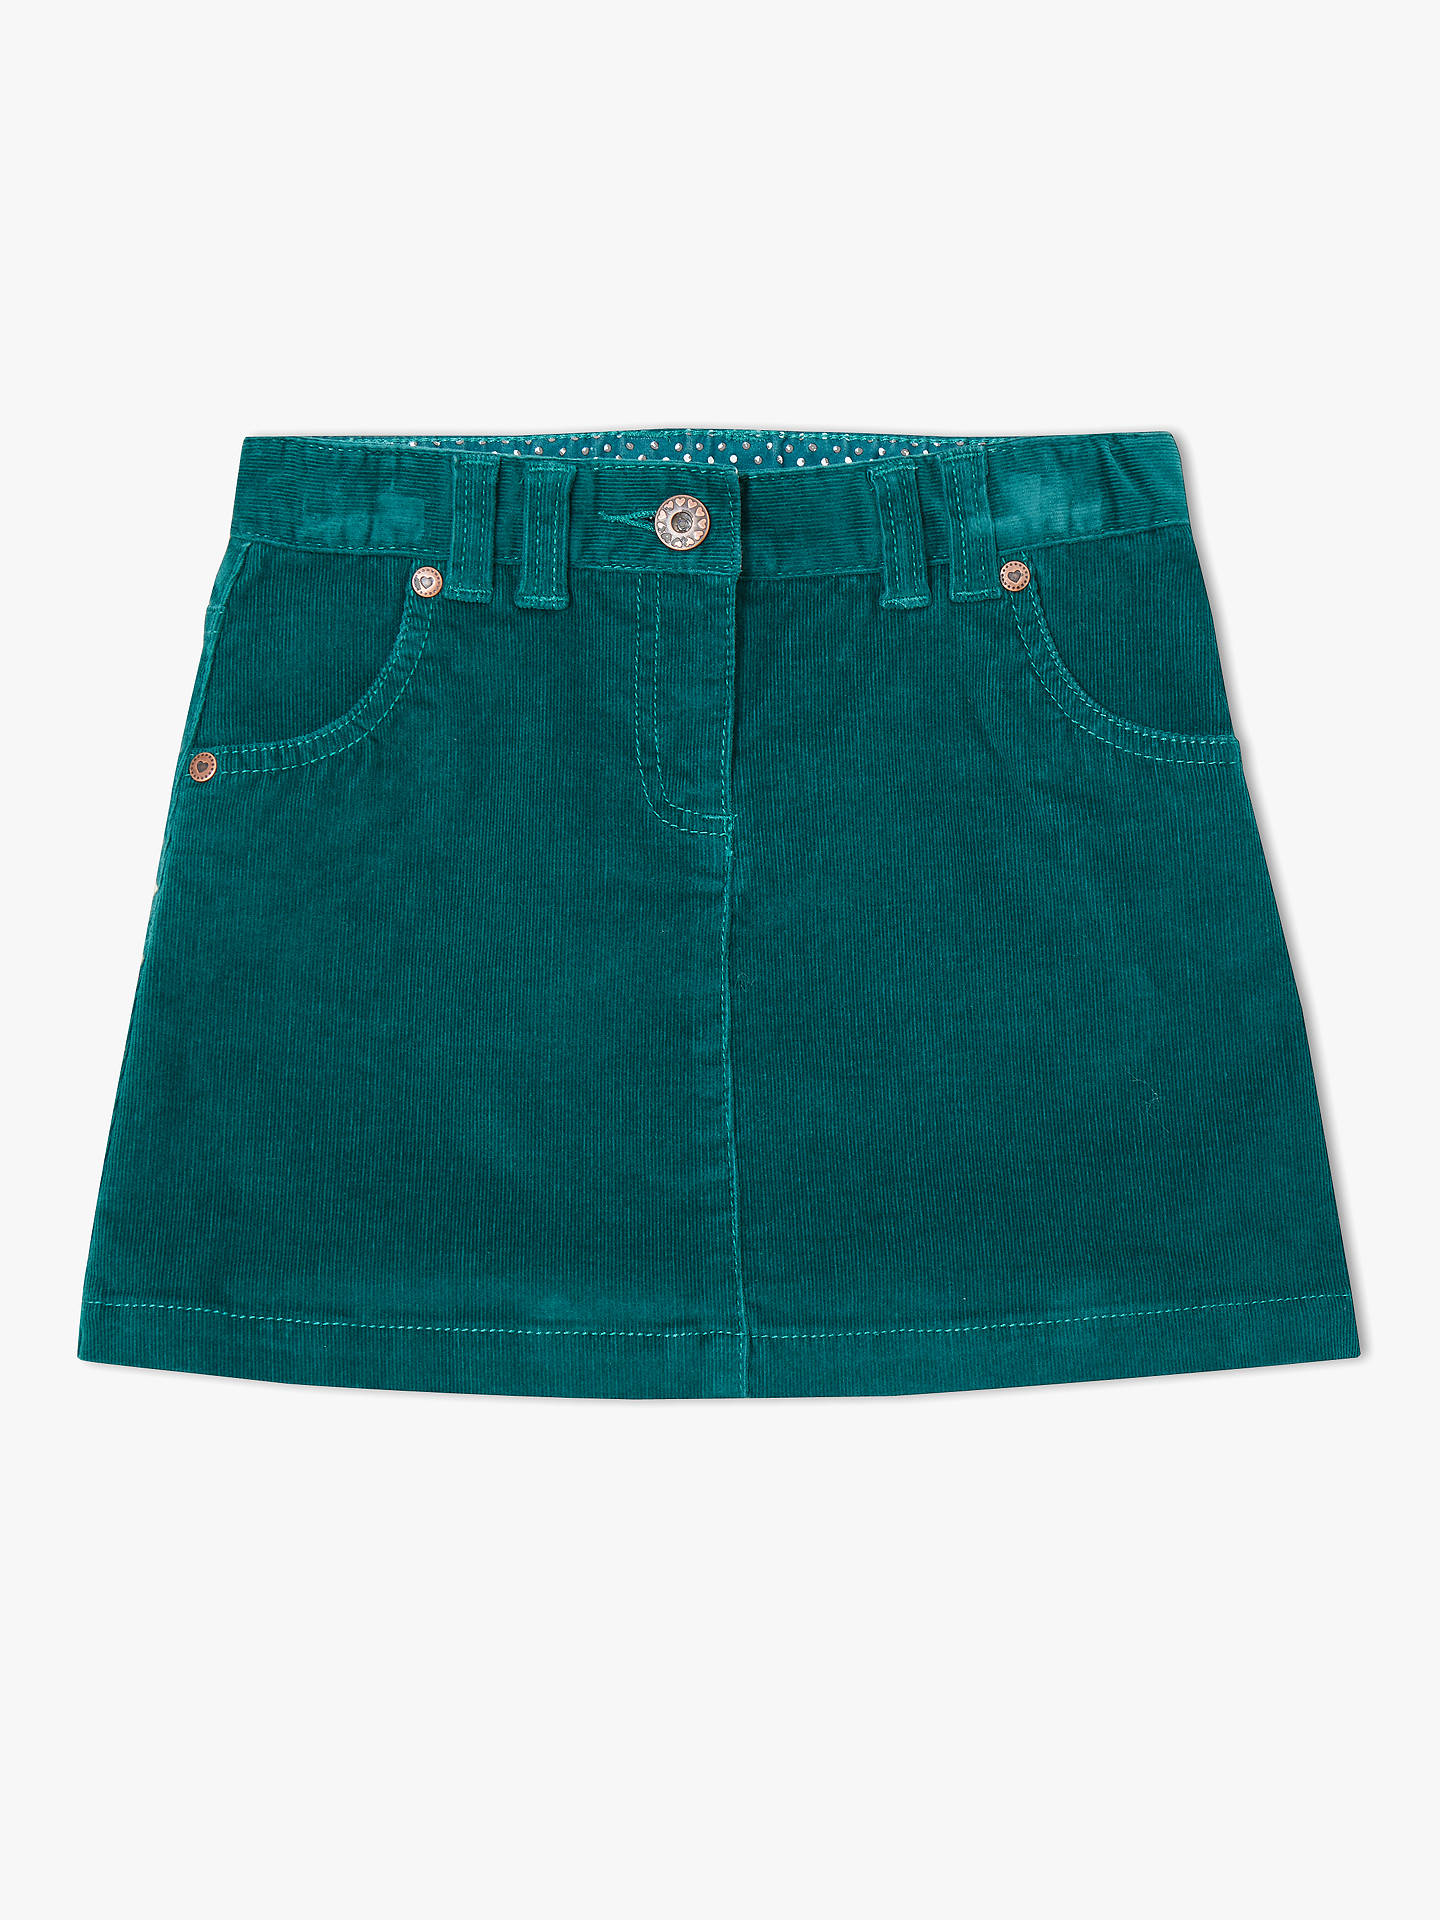 bc9465633 Buy John Lewis & Partners Girls' Corduroy Skirt, Green, 2 years Online at  ...